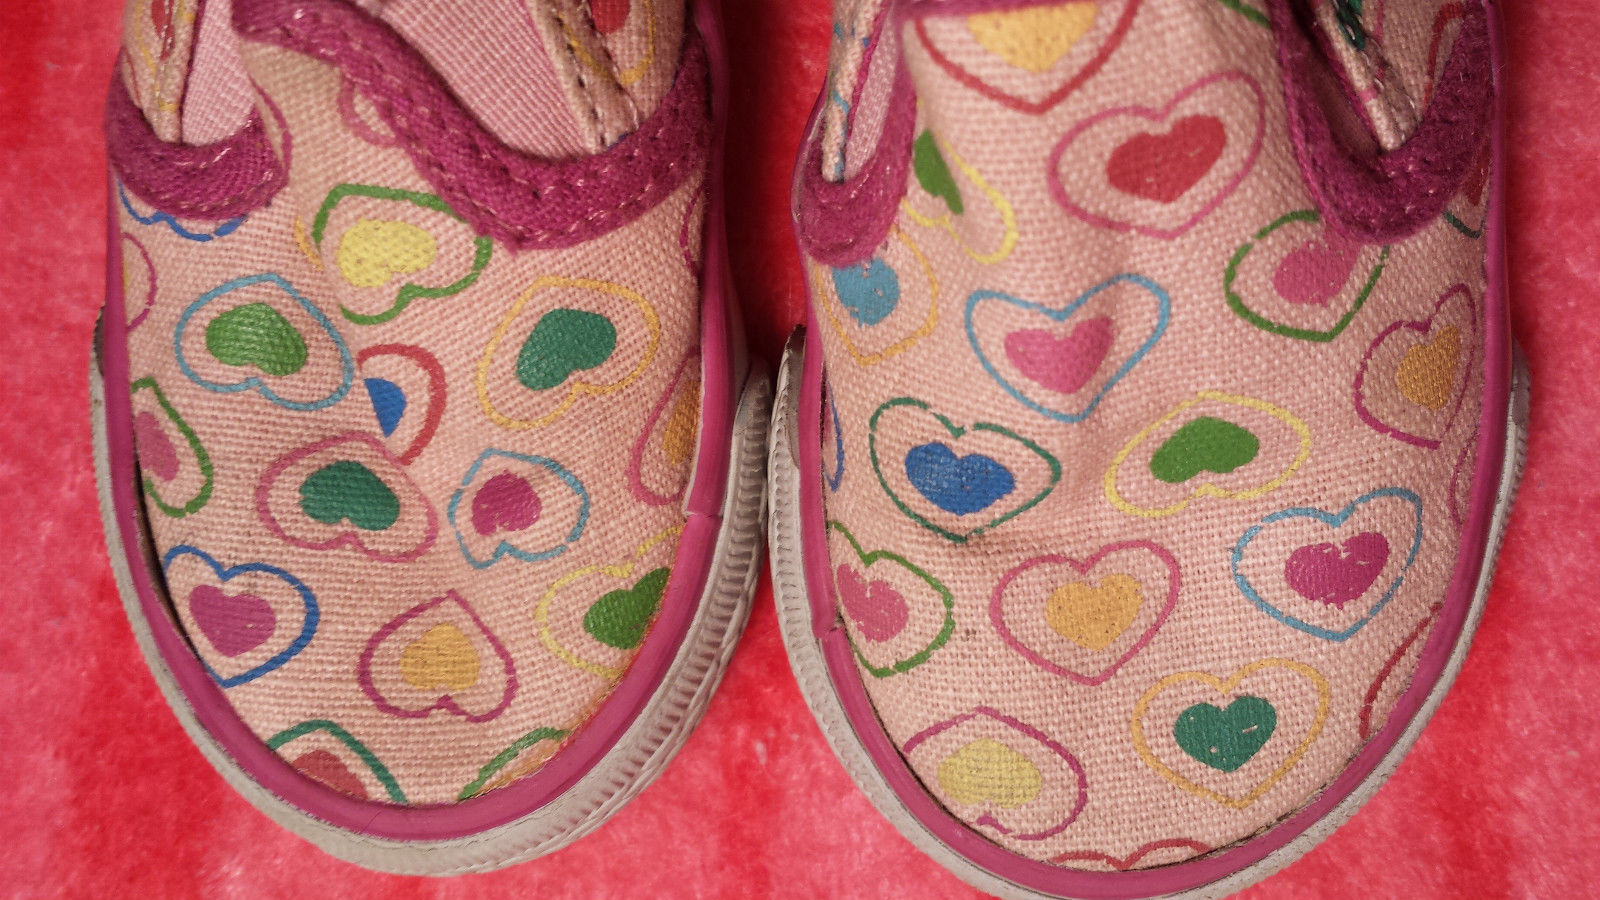 Girl's Size 4 Pink Heart Desinged Slip On The Children's Place Loafer Shoes GUC